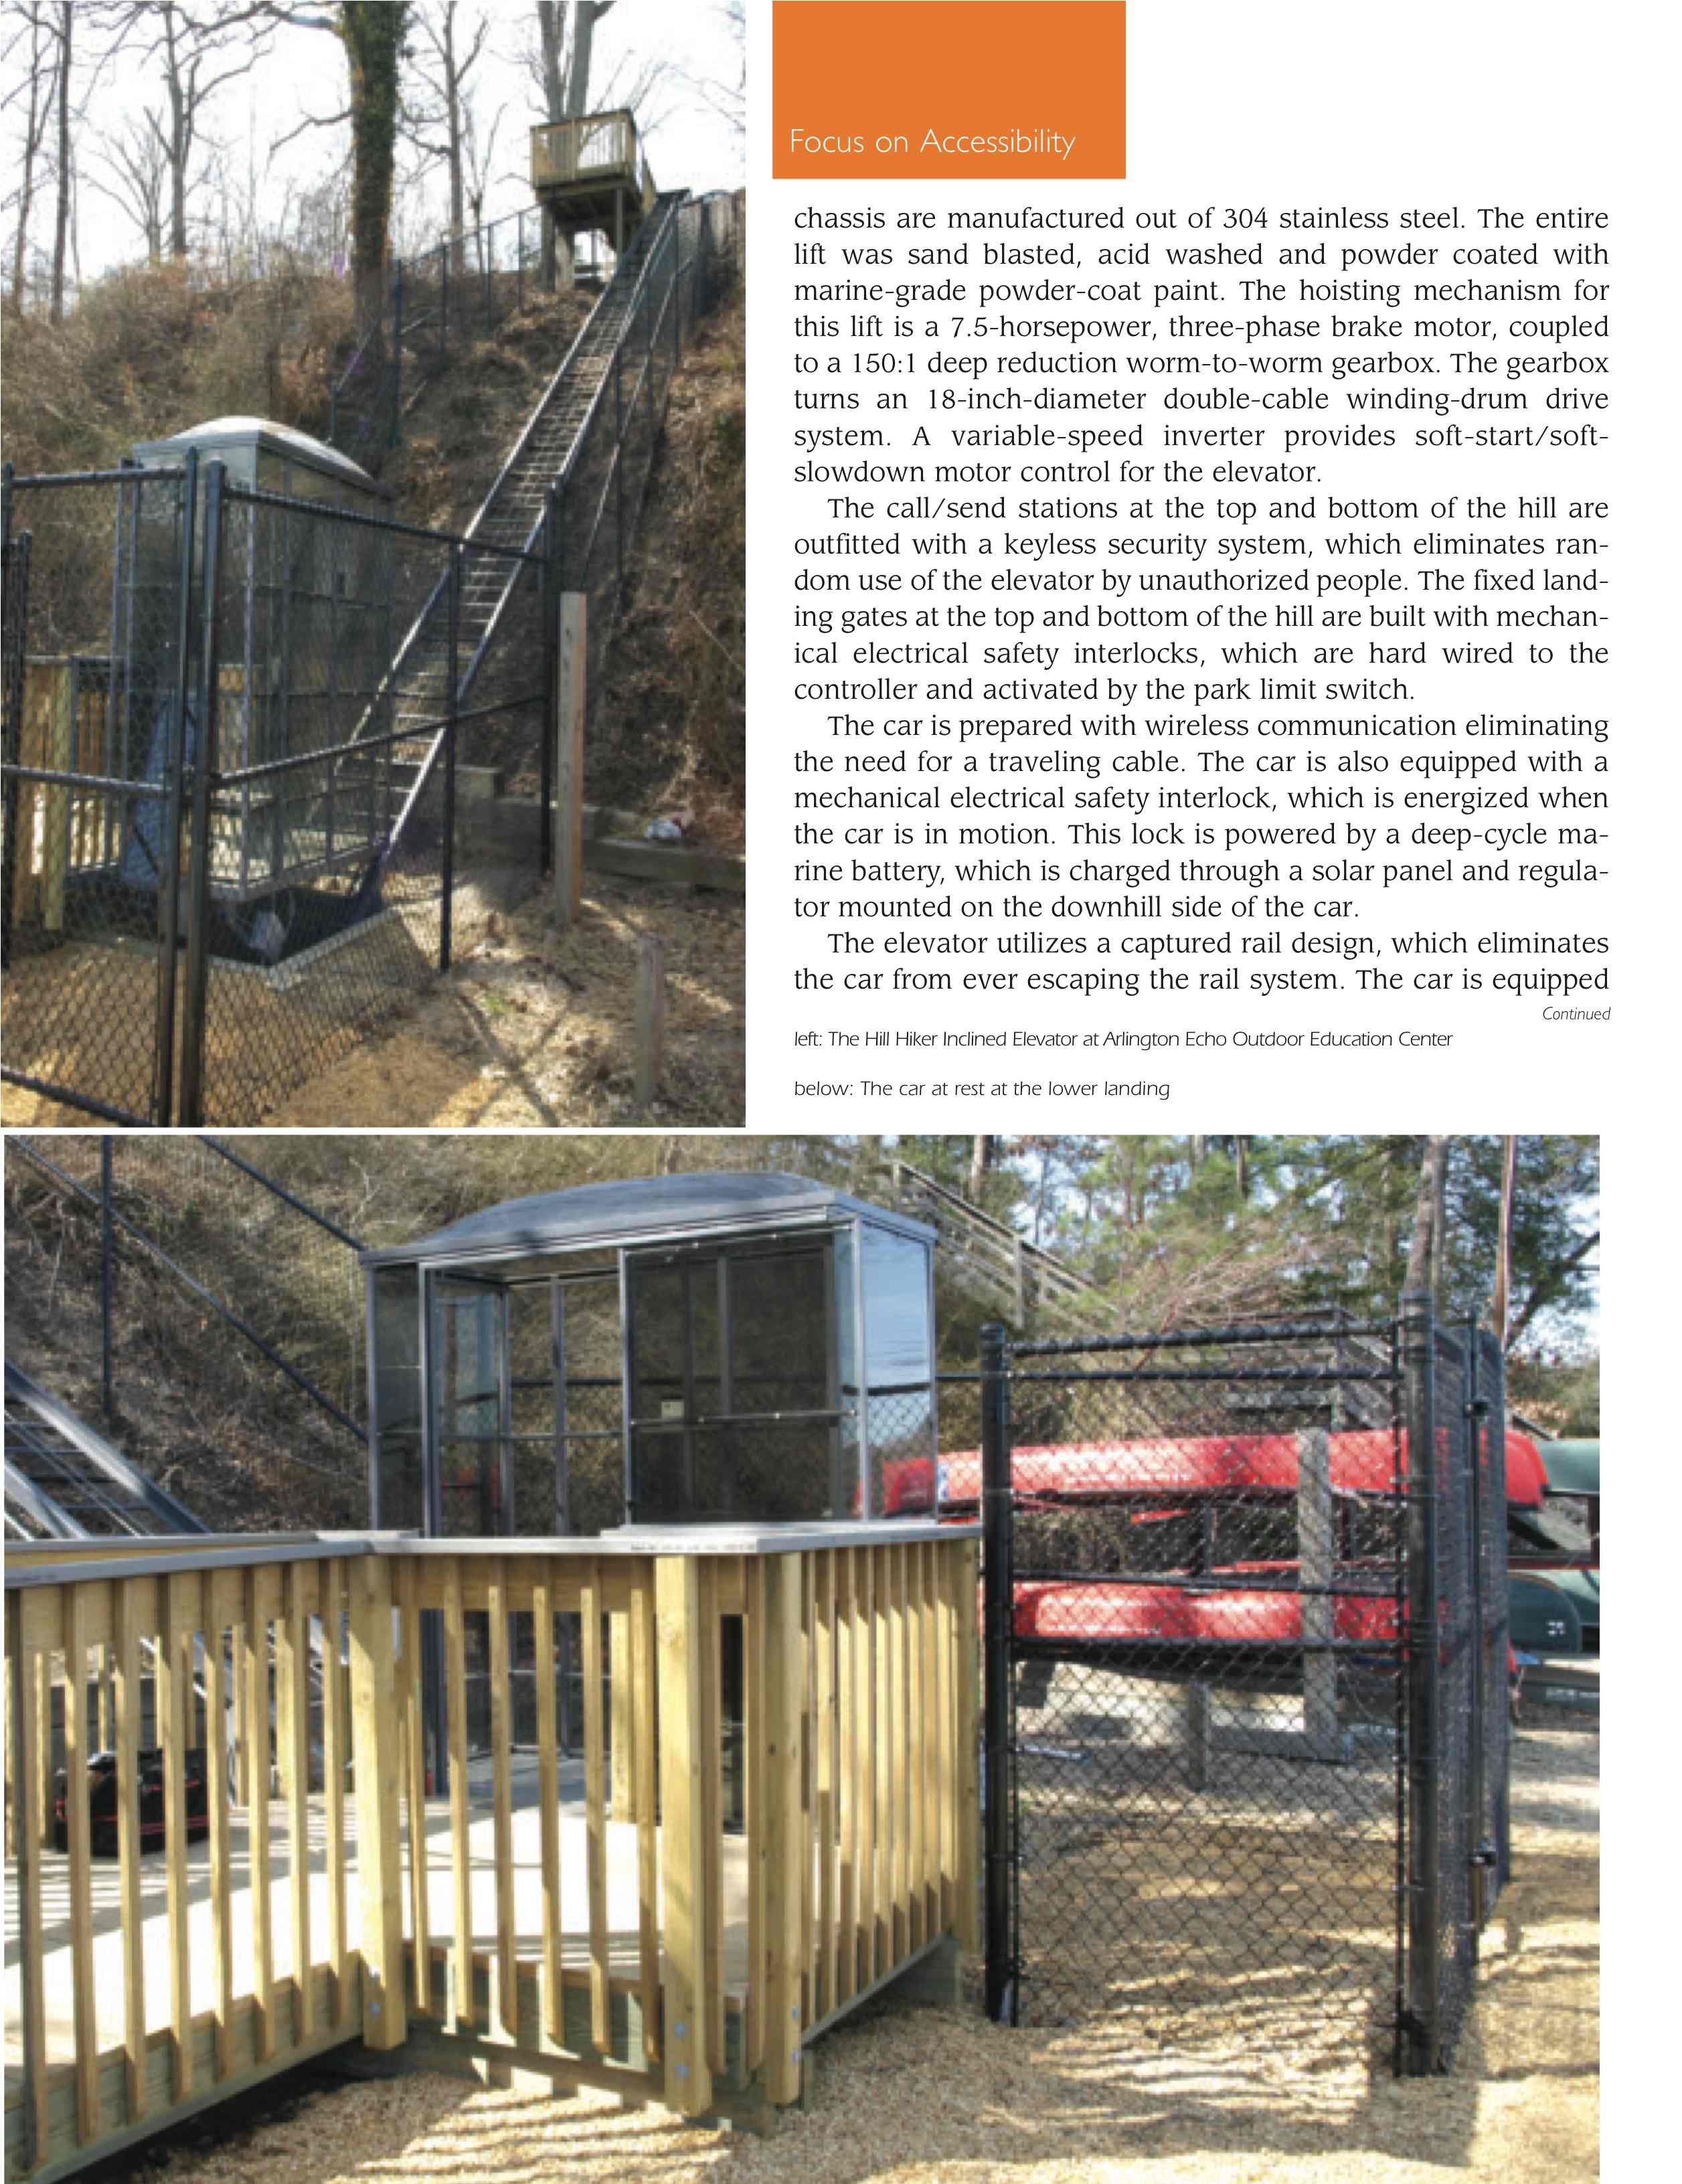 Maryland ADA Handicap Outdoor Education Center Article Page from Elevator World Magazine